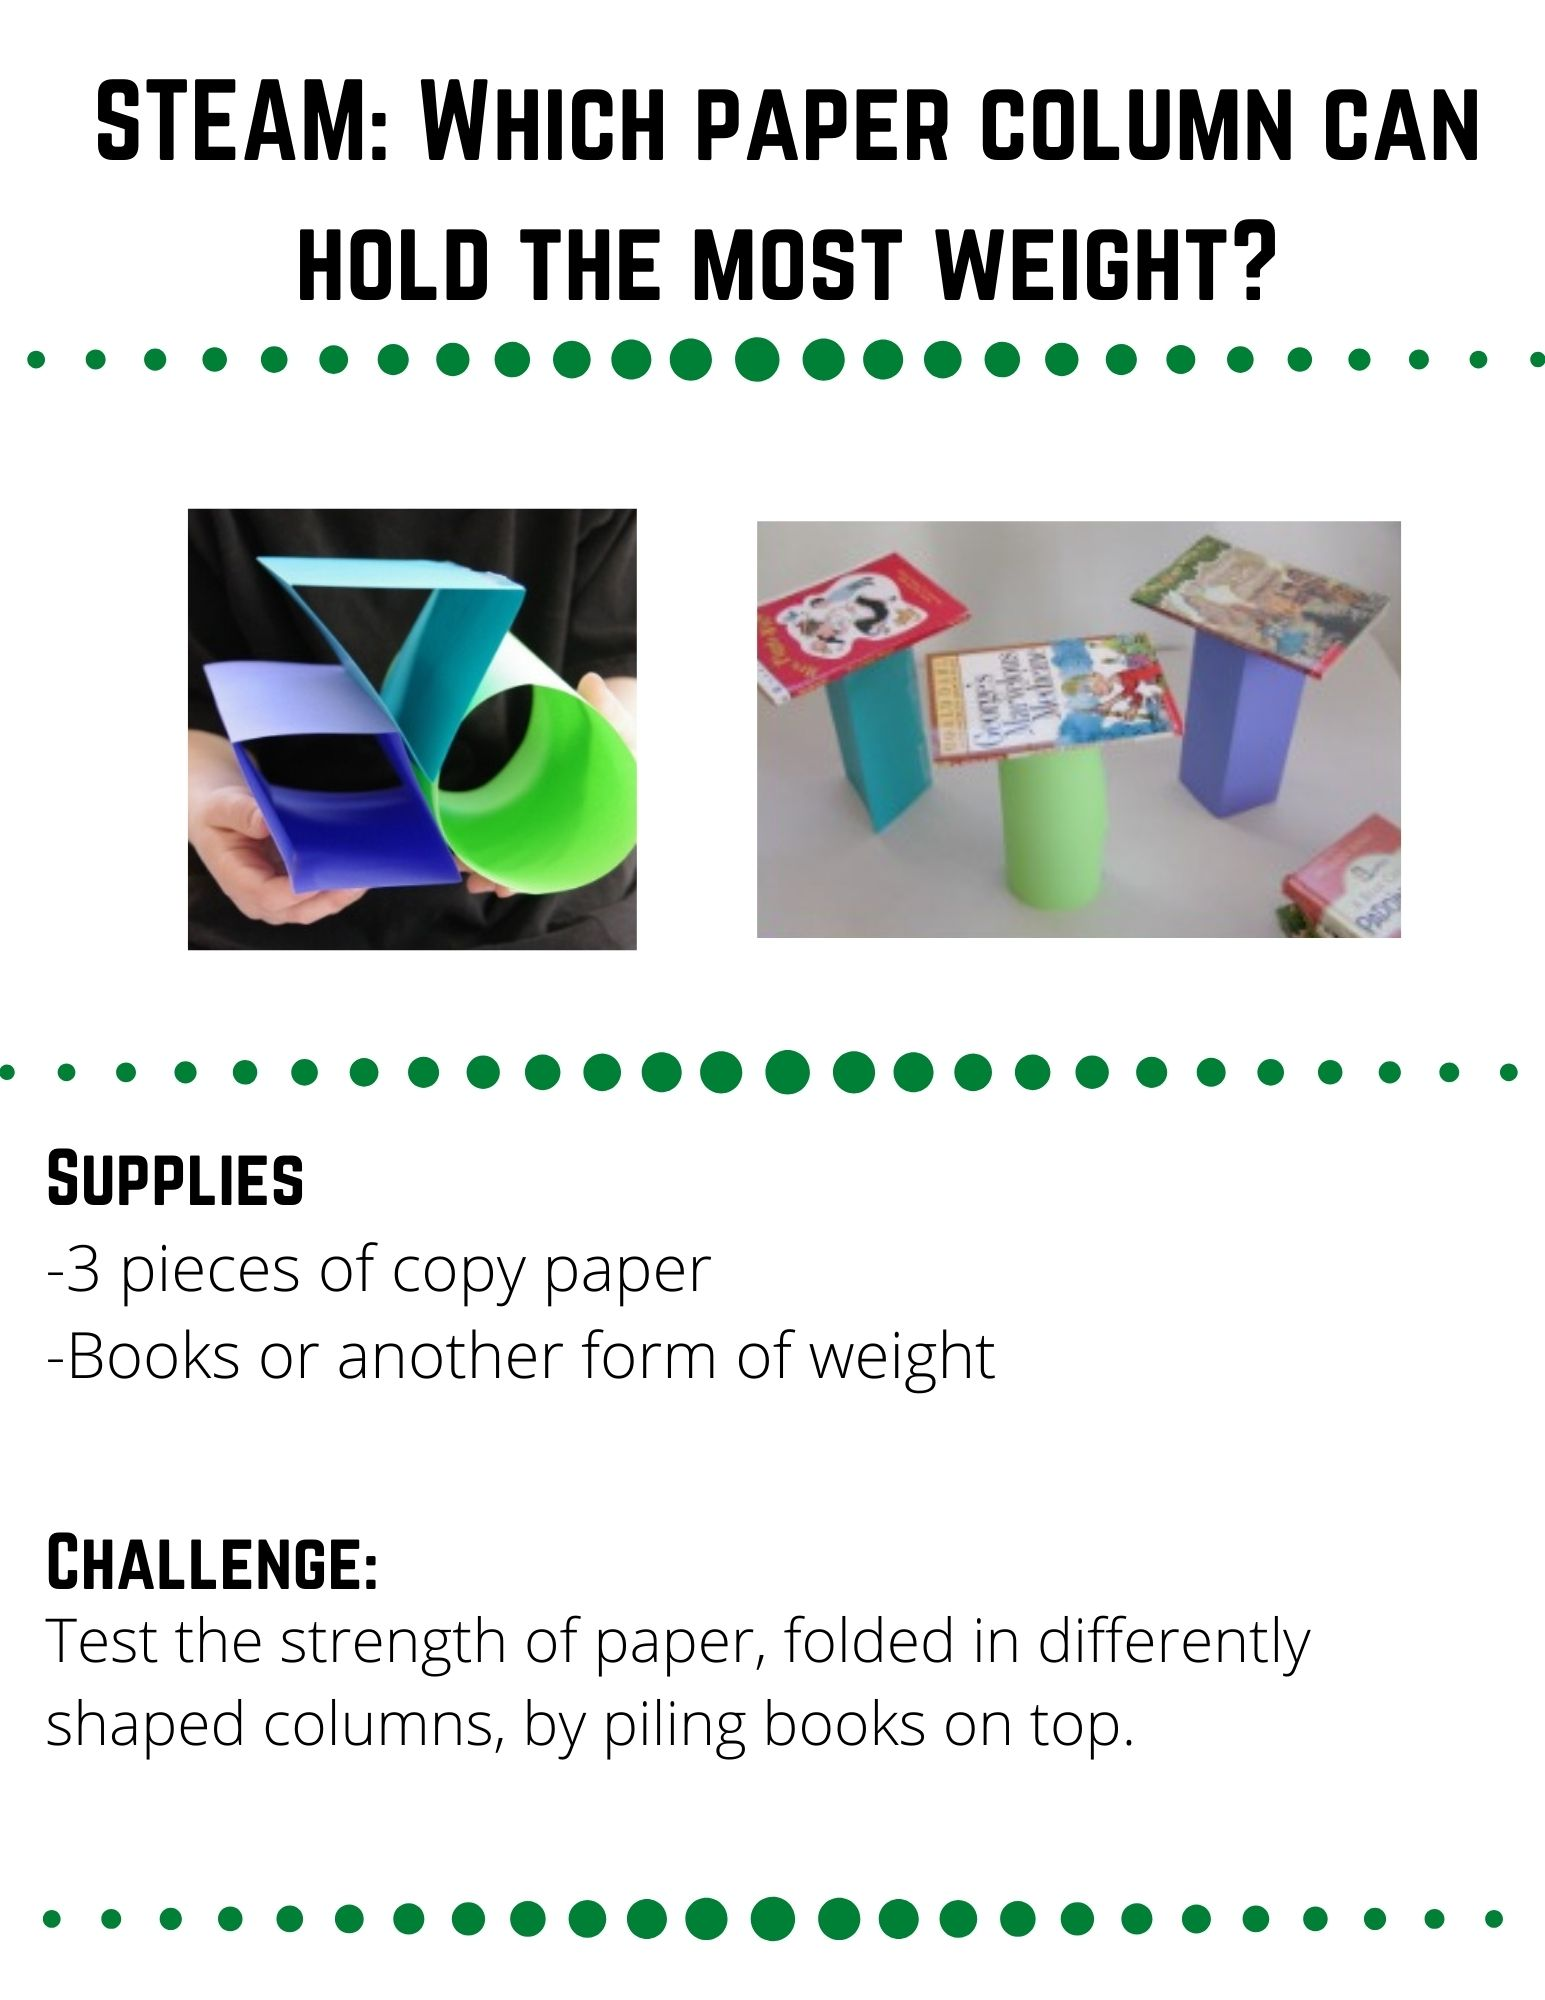 STEAM: Which Paper Column can hold the most Weight?: Supplies: -3 pieces of copy paper -Books or another form of weight. Fold each piece of paper into a different shape (triangle, cylindar, square) and secure them with tape.  Make a hypothesis.  Which shape do you think will hold the most weight?  Why?  Slowly pile books on top of each shape.  Count the number of books as you stack them and record how many books each shape could hold before it collapsed.